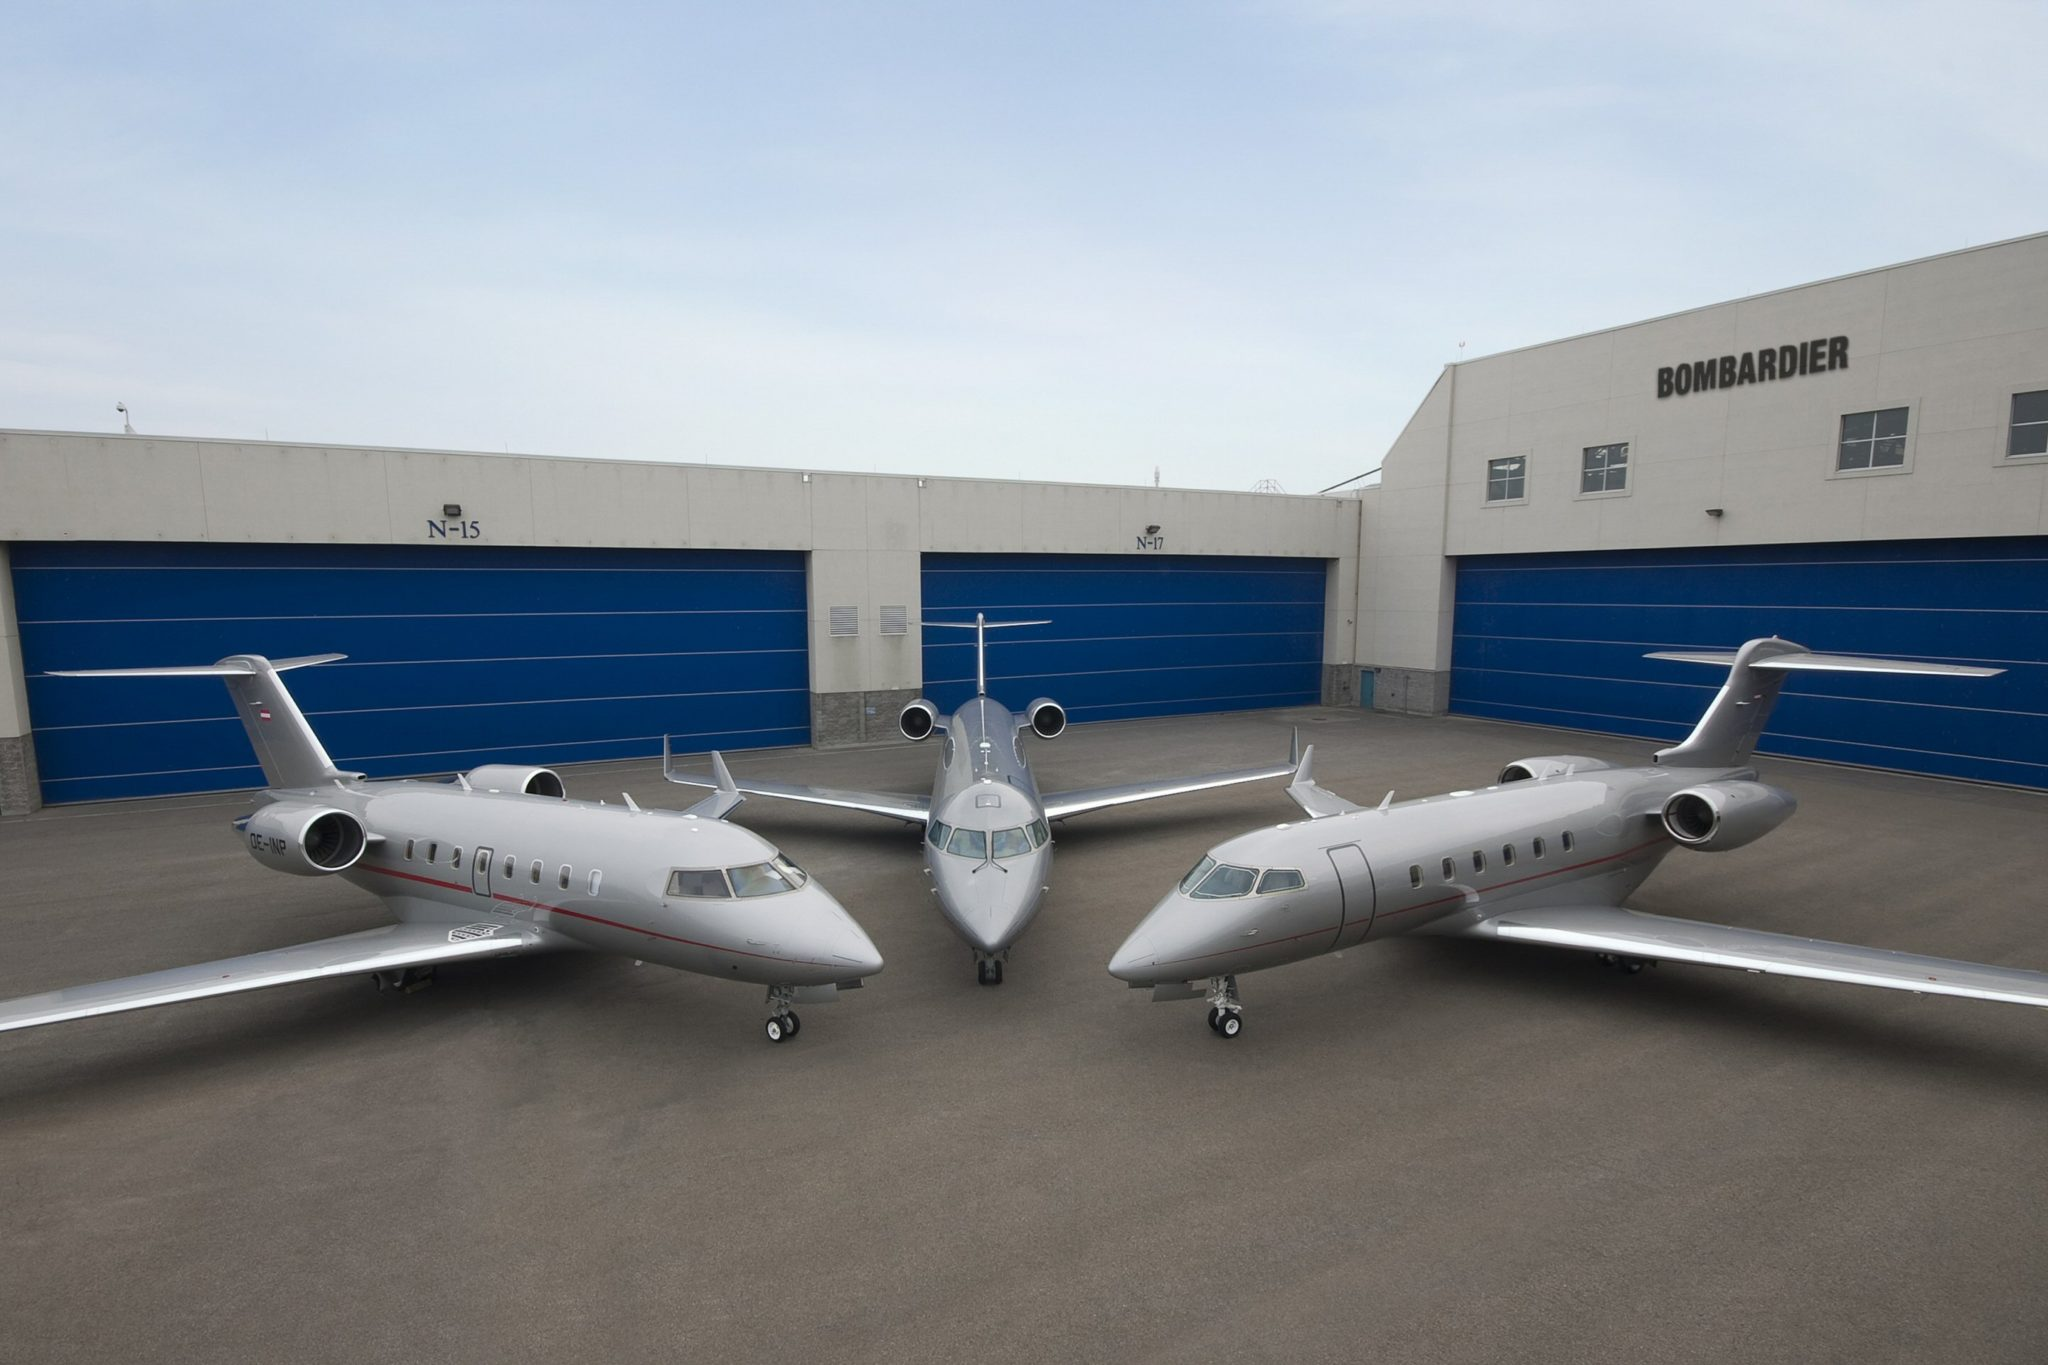 J.P.Morgan: Some Improvements Seen in Business Jet Market